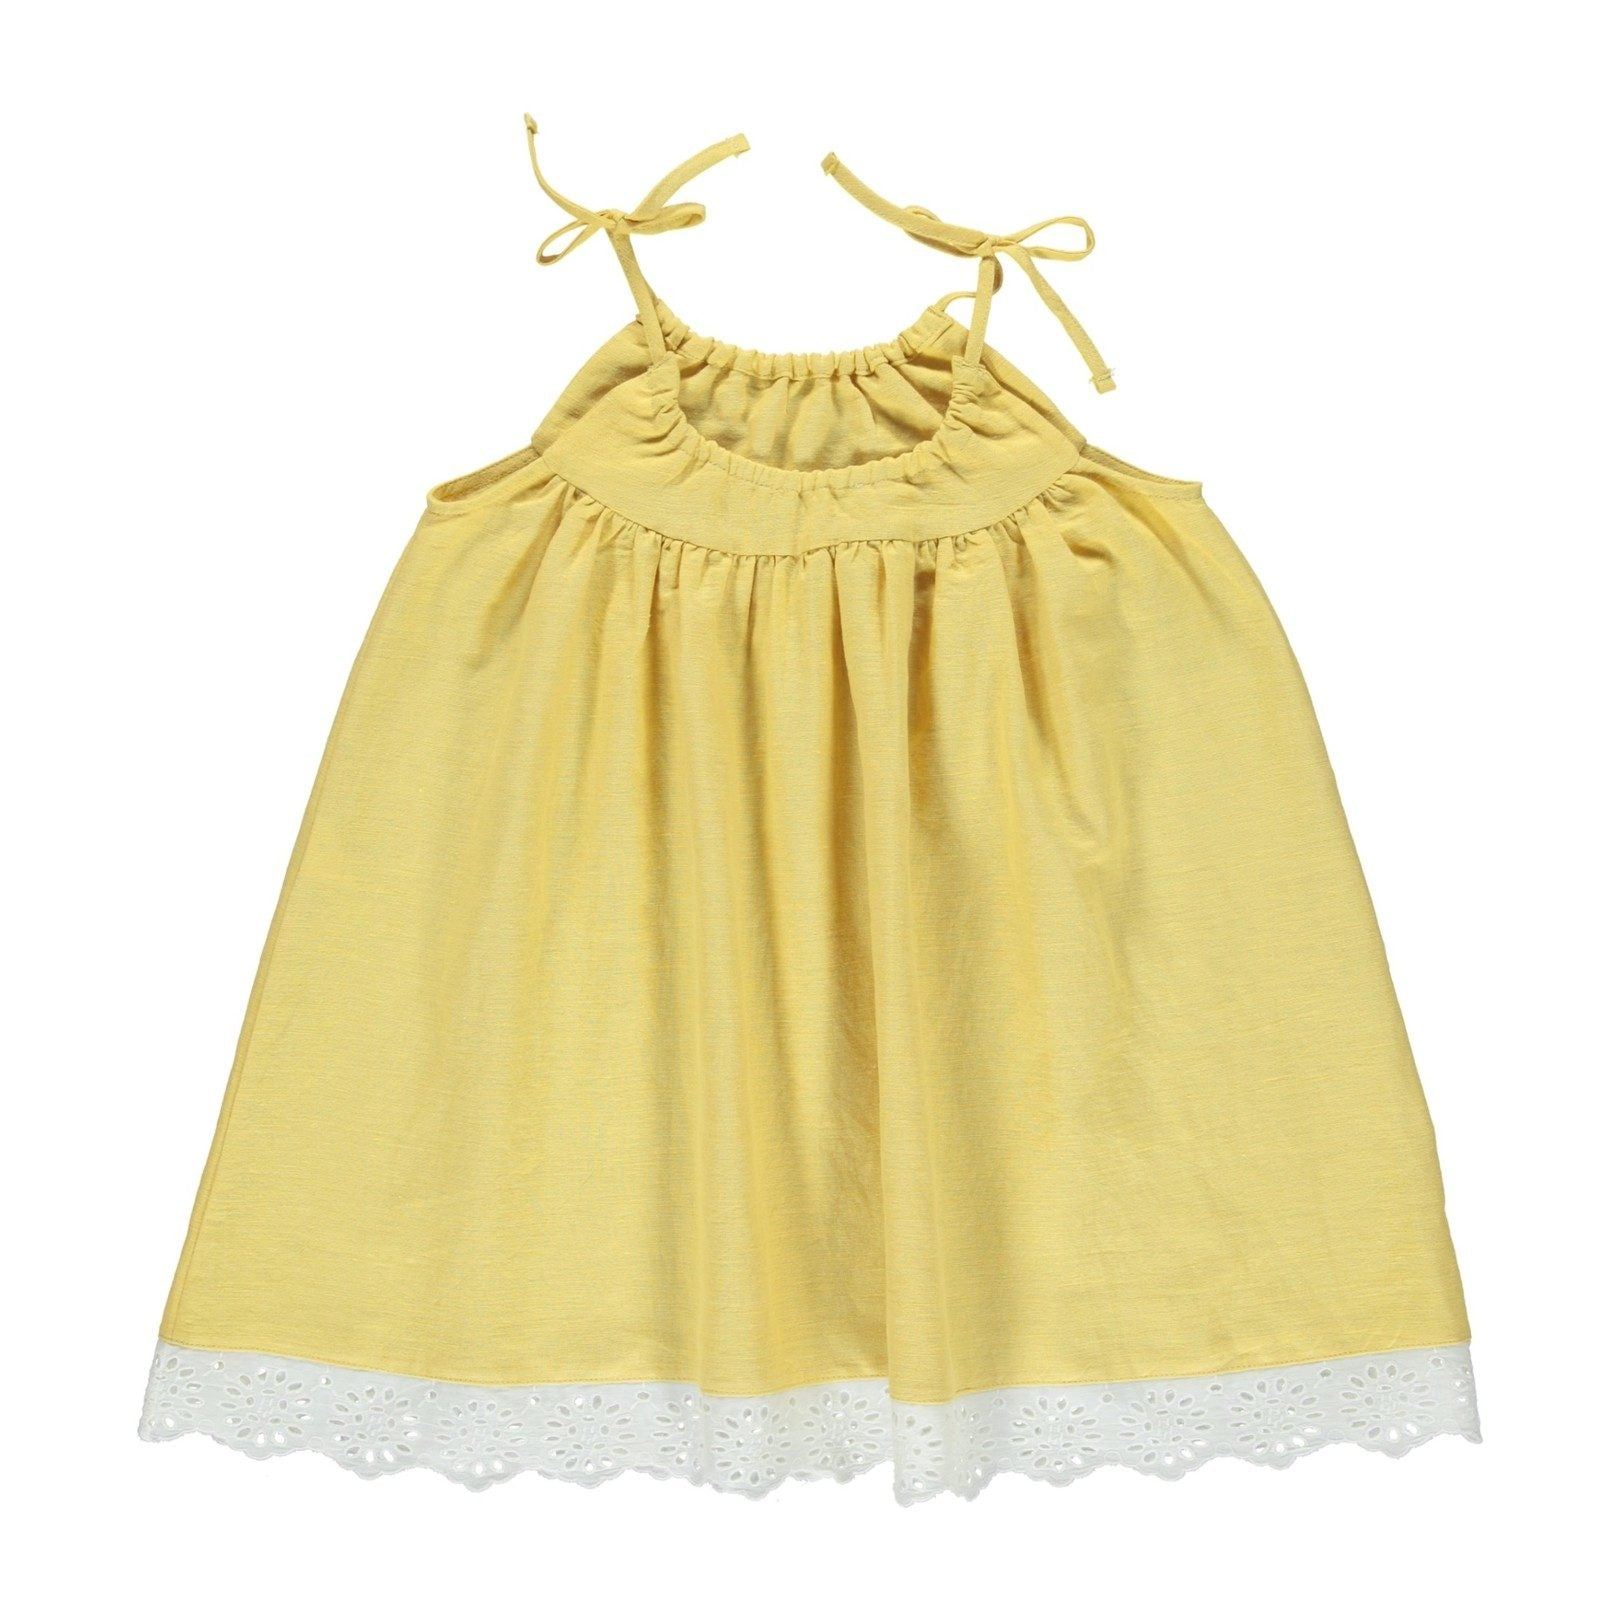 BEBE ORGANIC 'KATJA' DRESS, SUNSHINE - Spinel Boutique